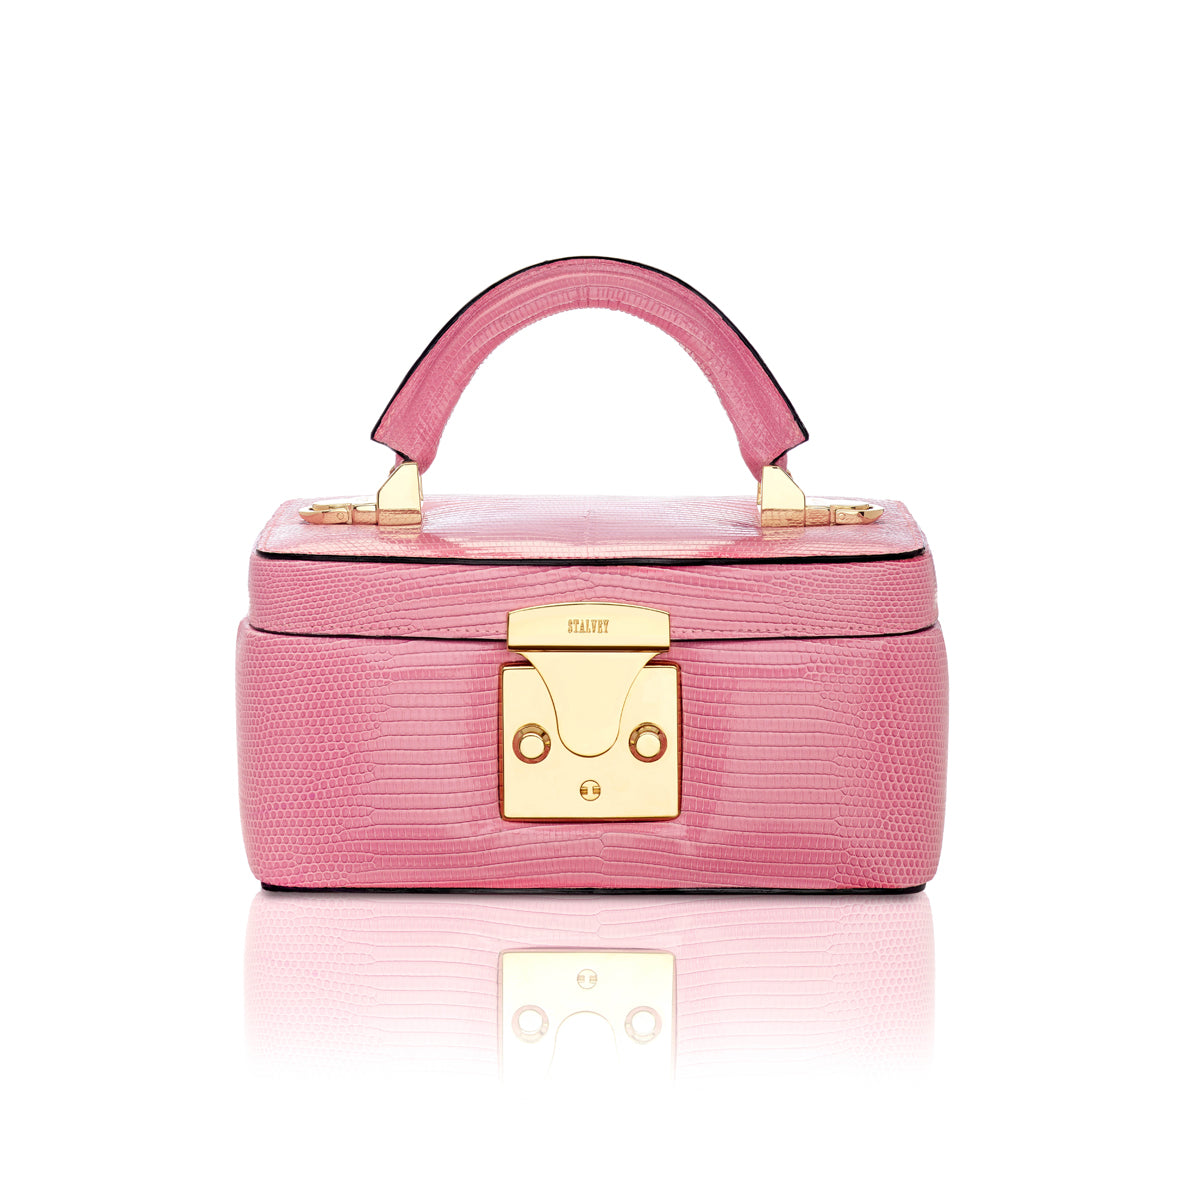 Beauty Case 1.7 Mini - Powder Pink Lizard